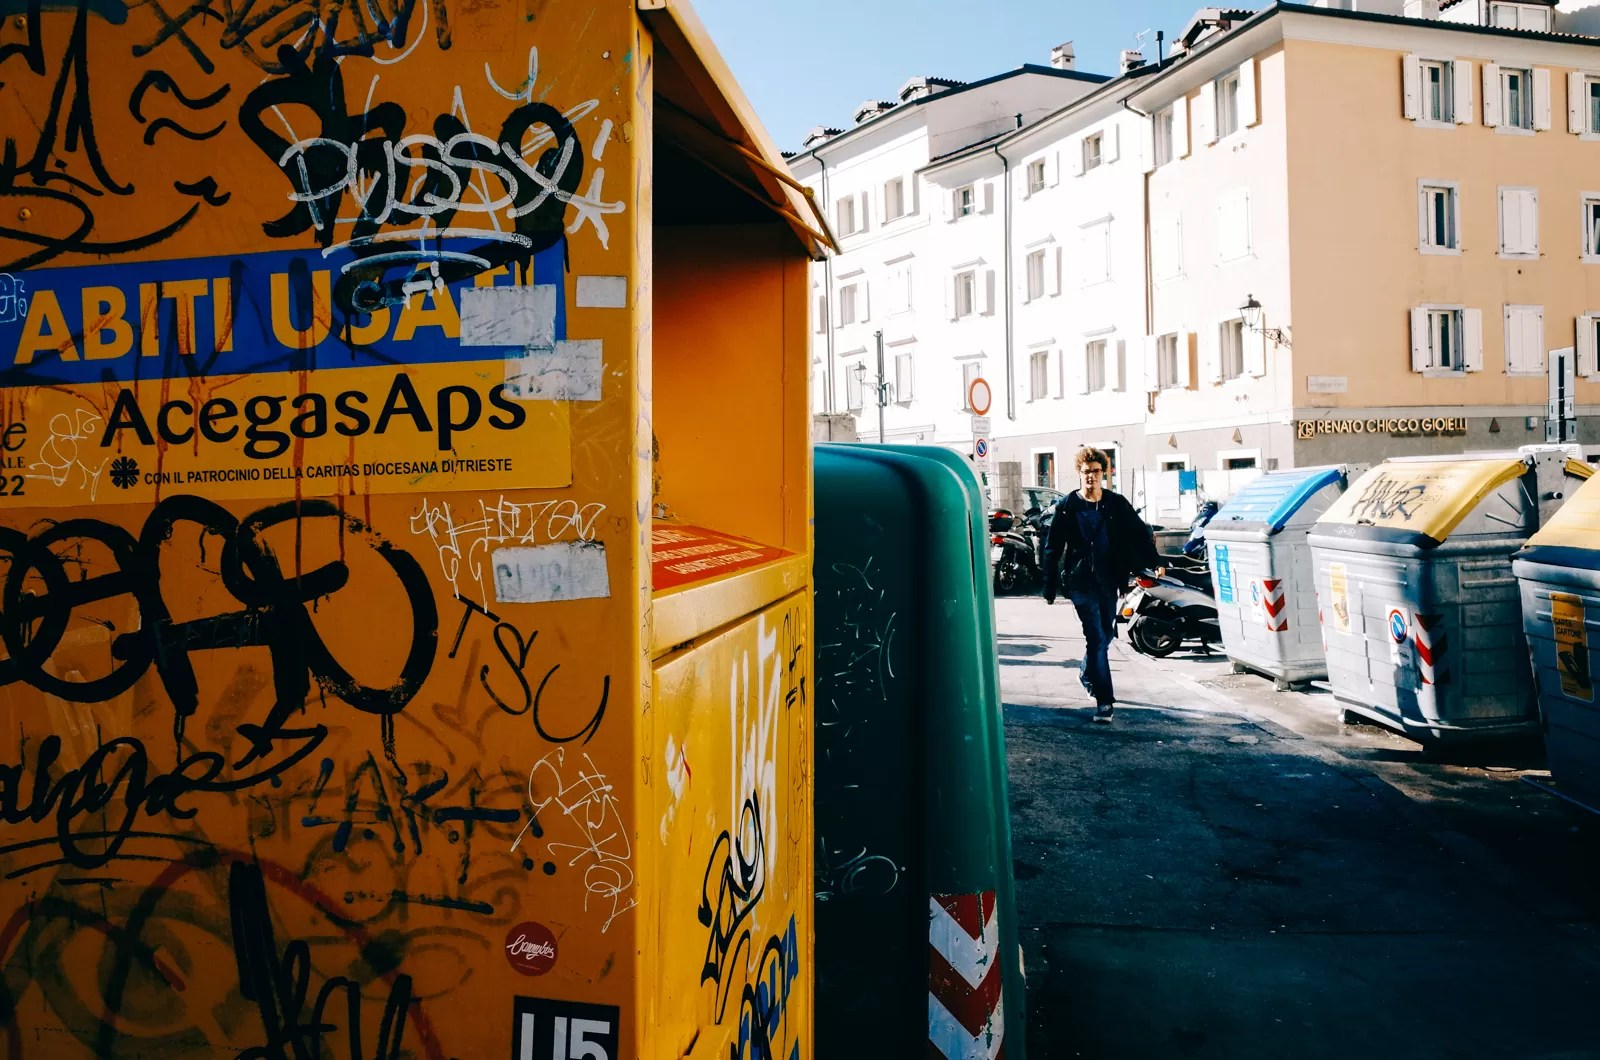 R0006763 - One Day in Trieste [Color Street Photography] - fotostreet.it